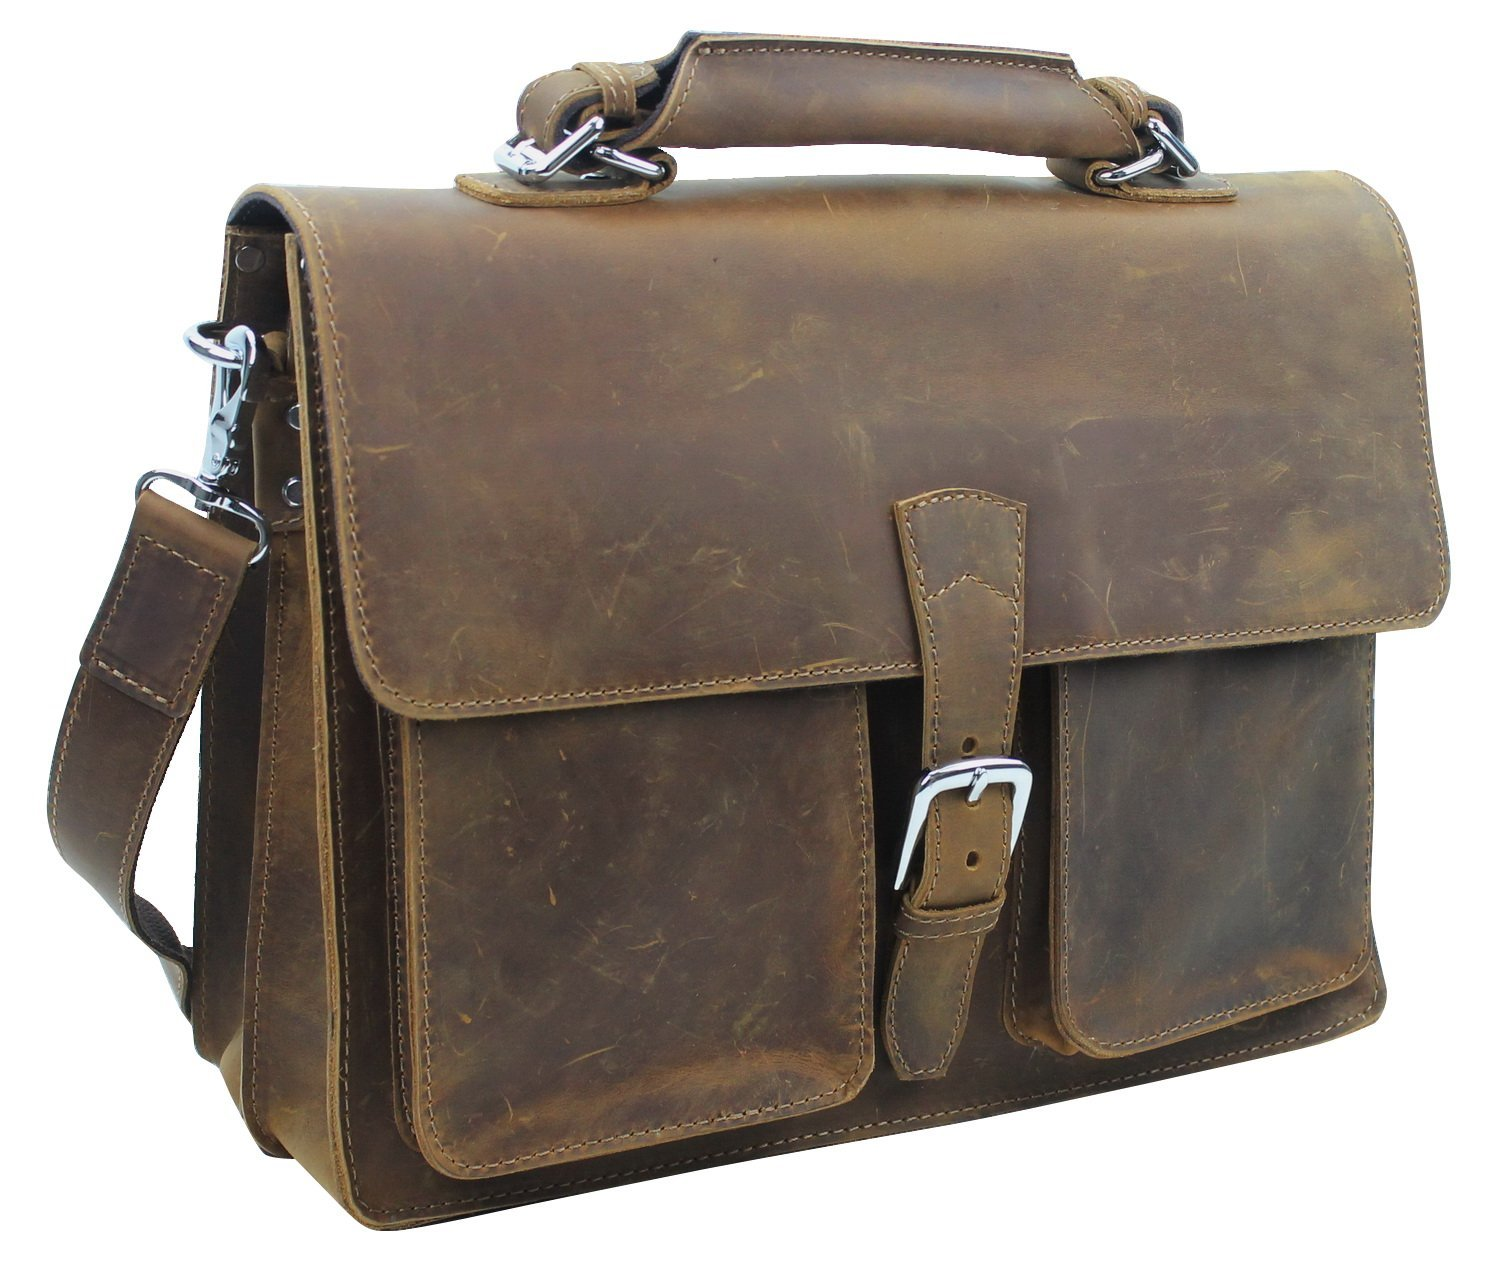 Vagabond Leather Laptop Bag